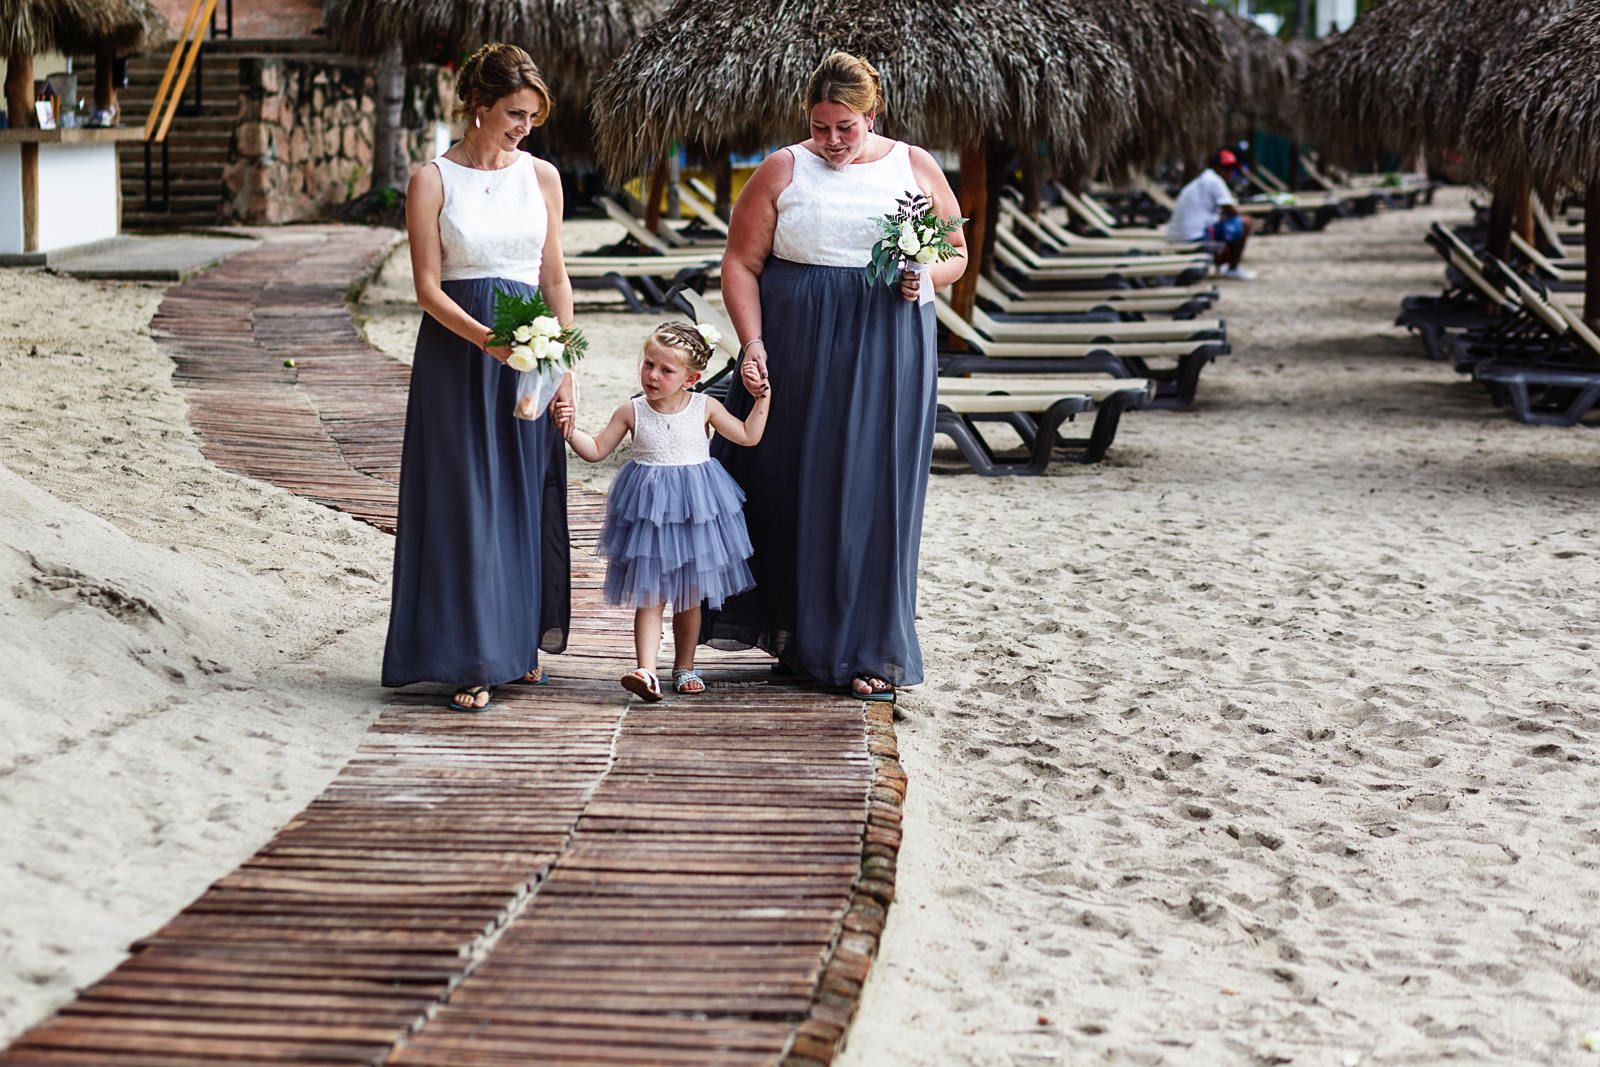 Bridesmaids and flower girl walking down a wood path on the beach for the wedding ceremony to start.